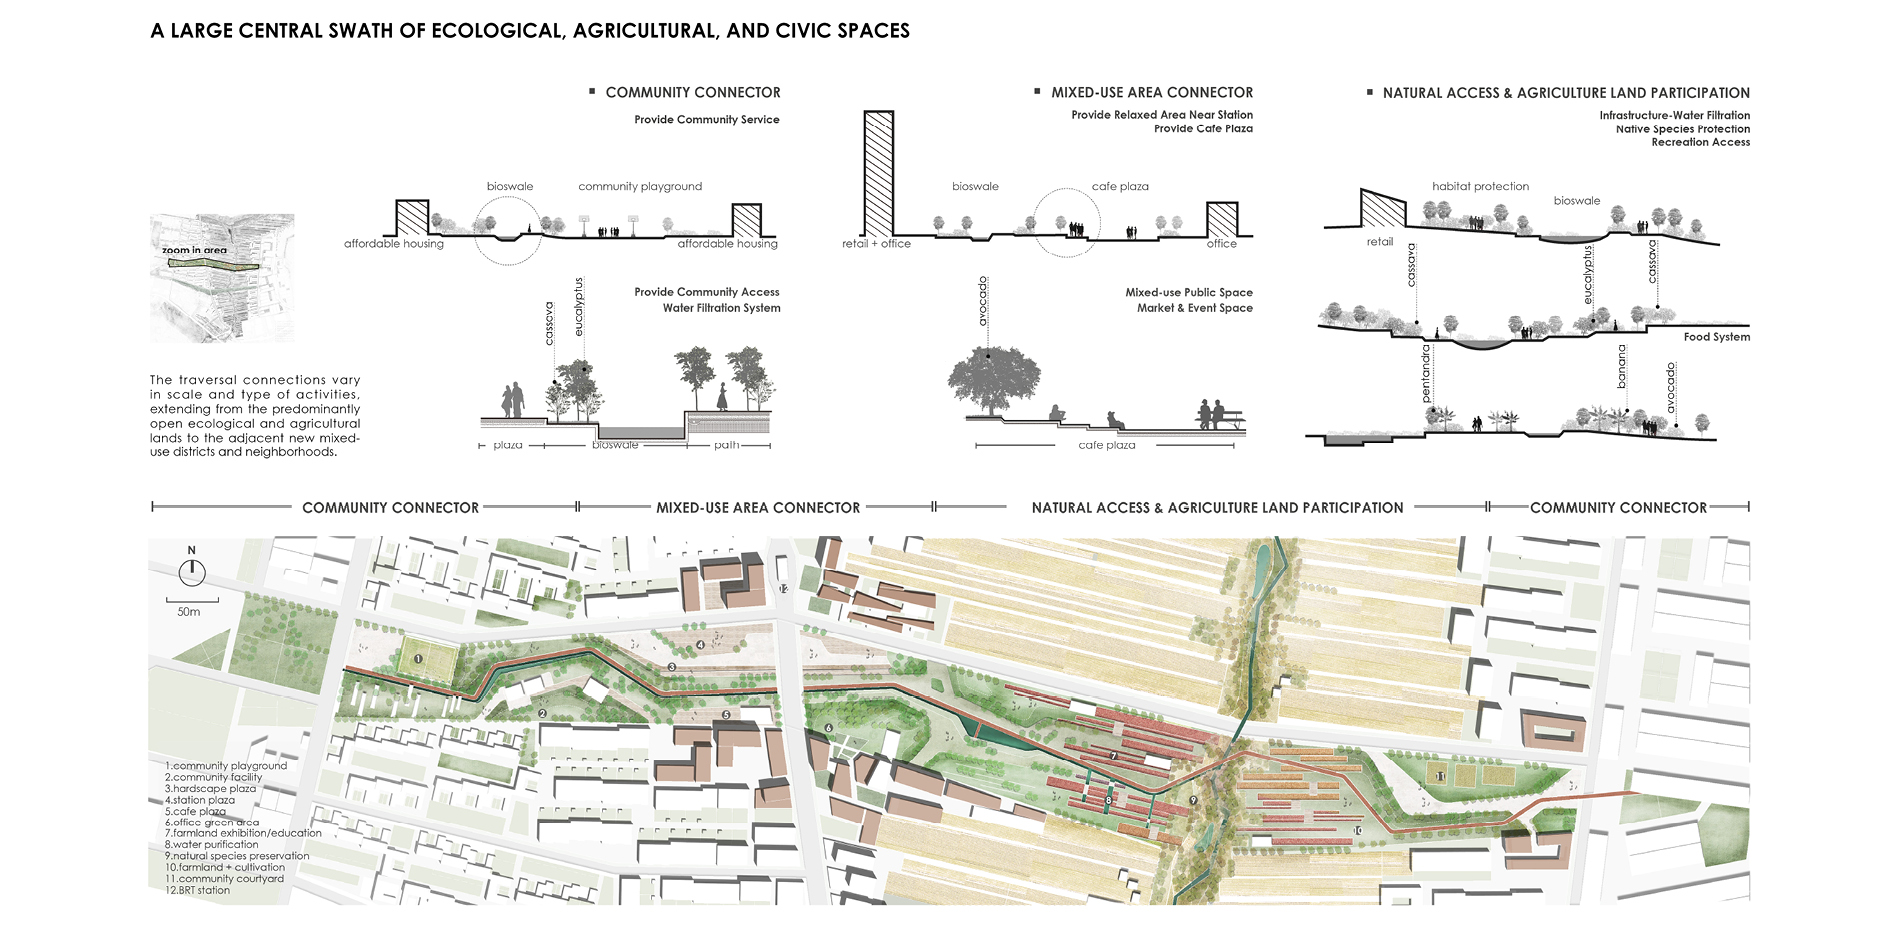 A Large Central Swath of Ecological, Agricultural, and Civic Spaces